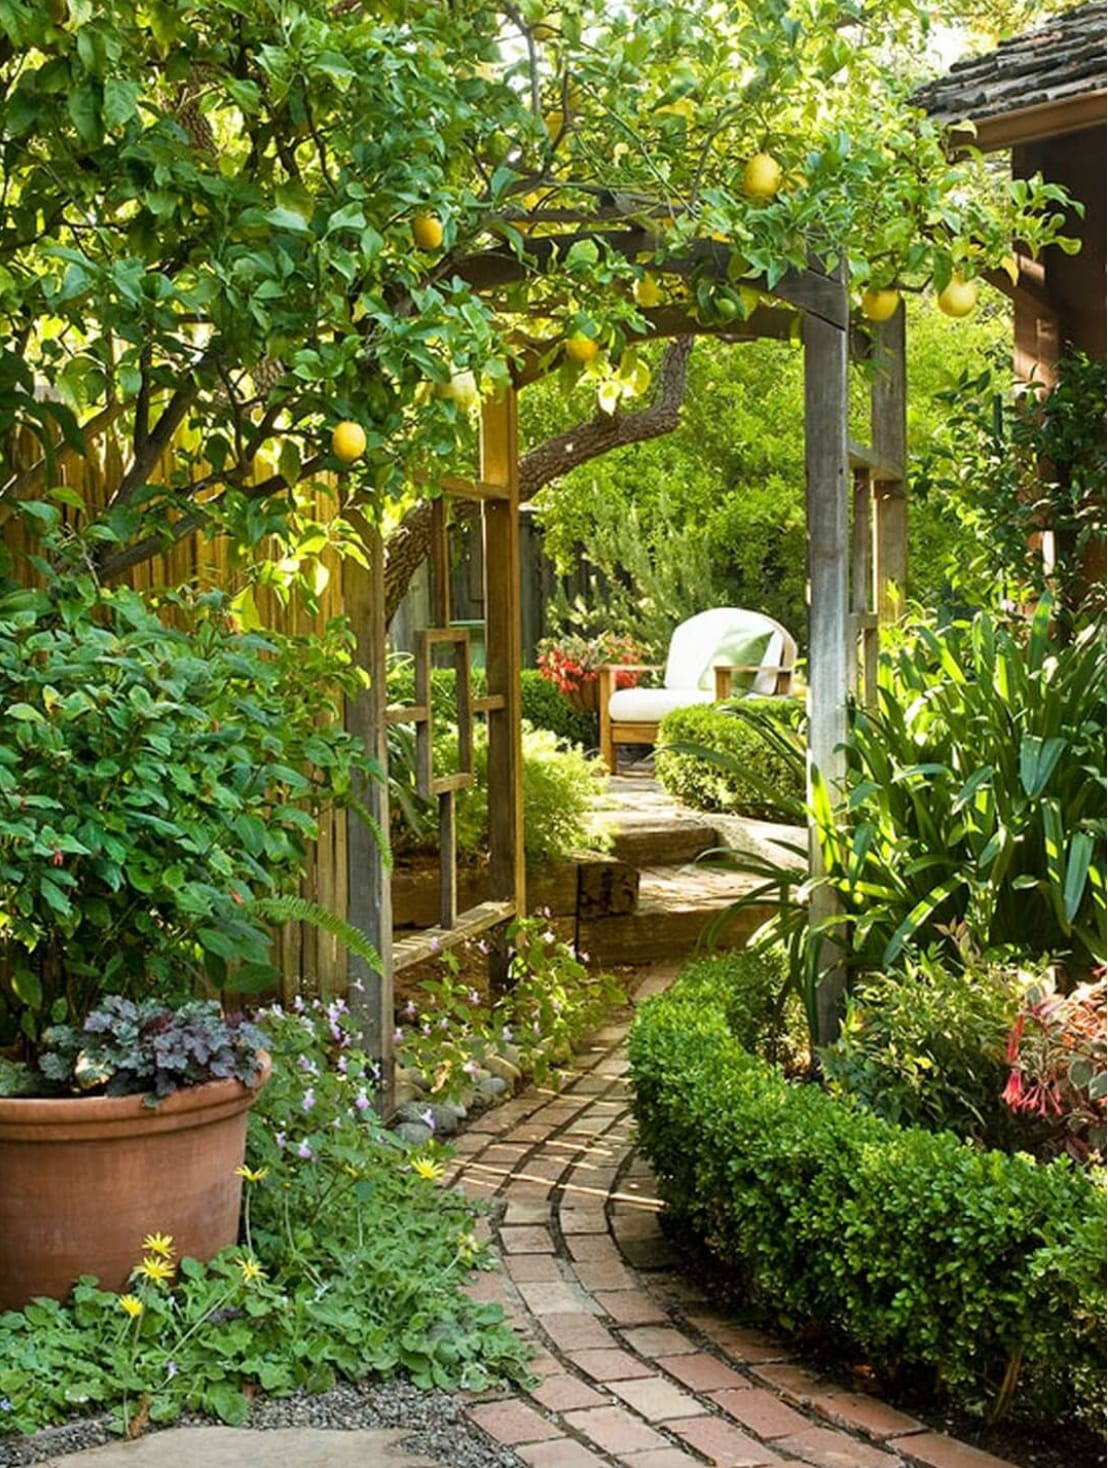 Best cottage style garden ideas for landscaping #21